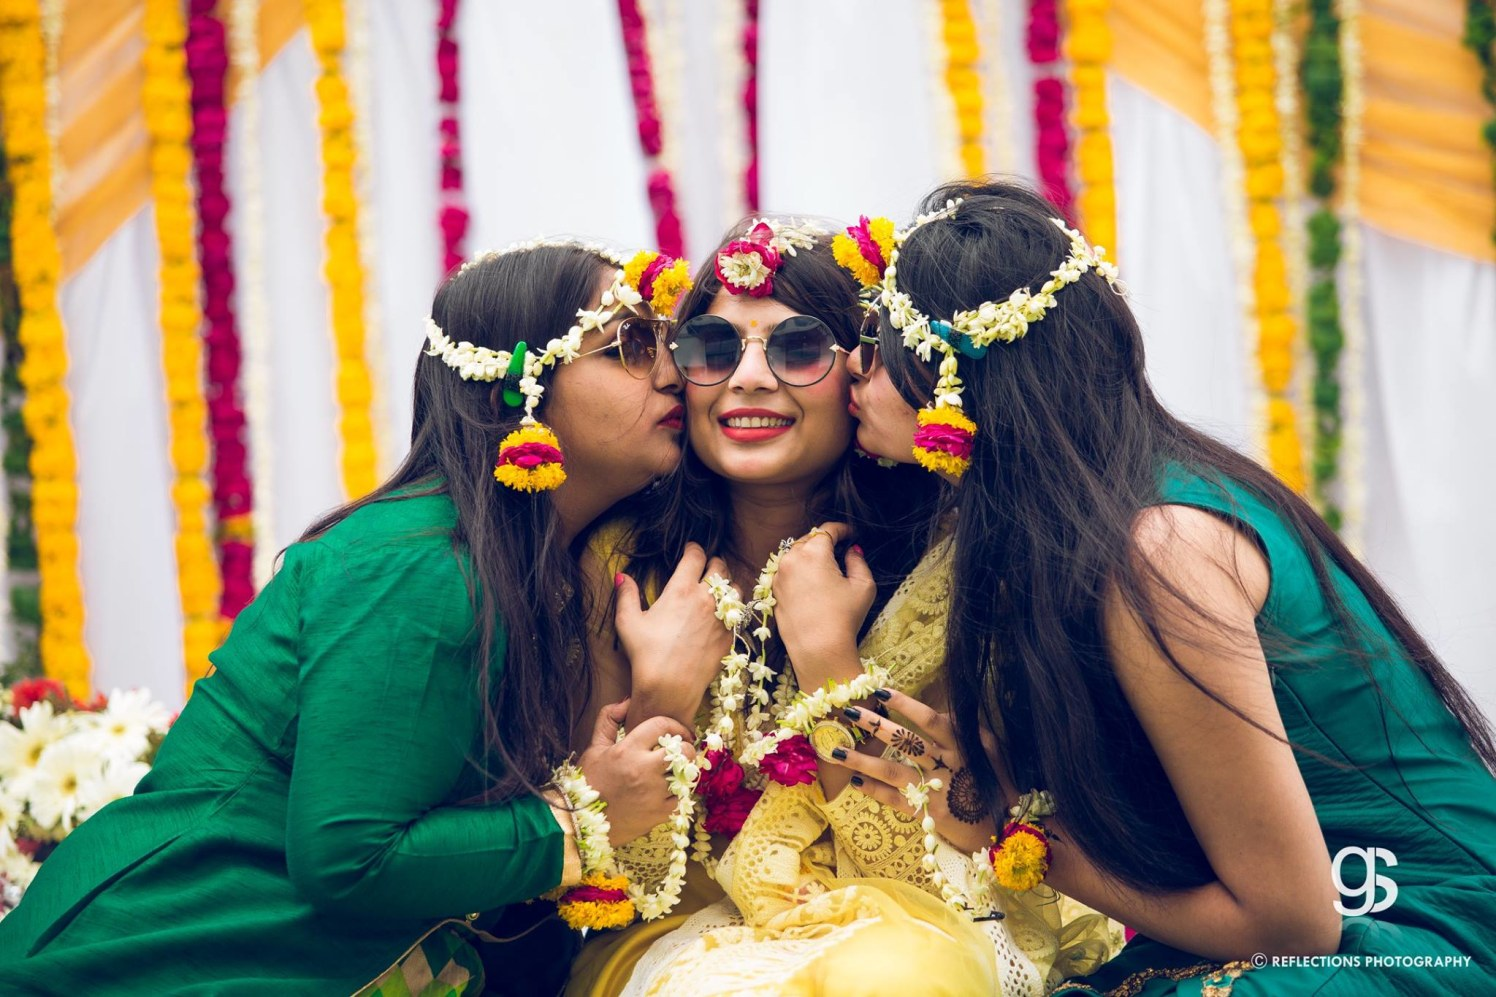 Kiss the bride! by Reflections Photography Wedding-photography | Weddings Photos & Ideas